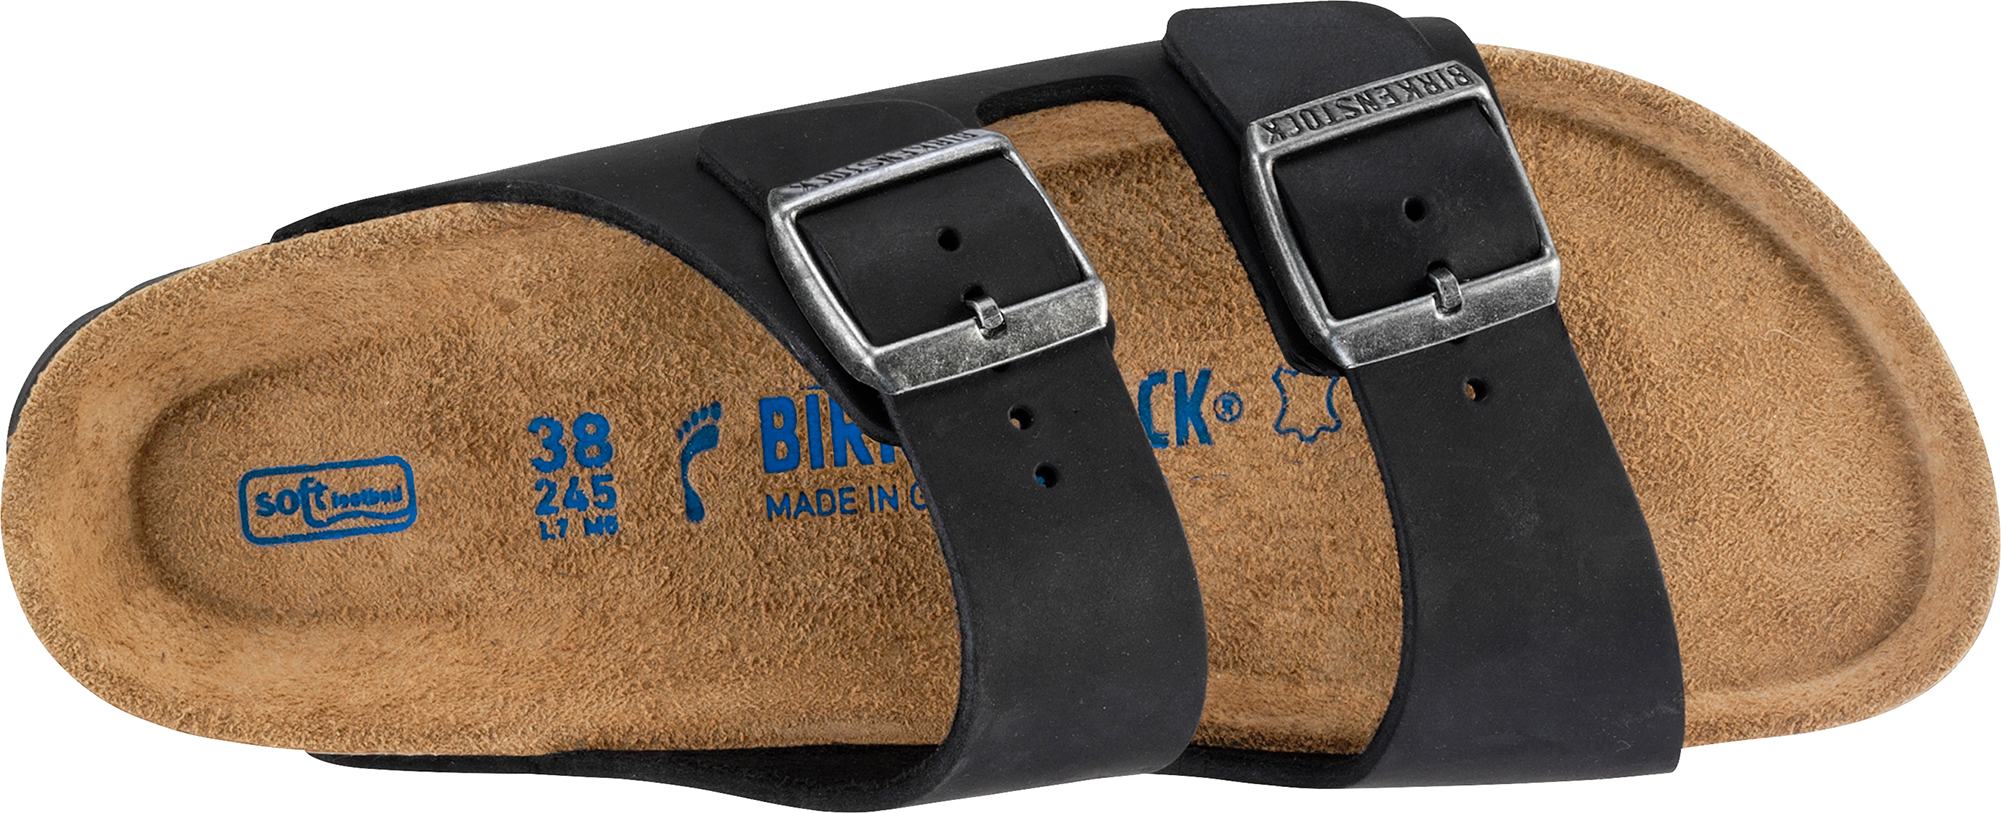 4ac70342d14 Birkenstock Women s Arizona Oiled Leather Strap Soft Footbed Narrow Fit  Sandals Uk5 Black. About this product. Picture 1 of 4  Picture 2 of 4   Picture 3 of ...